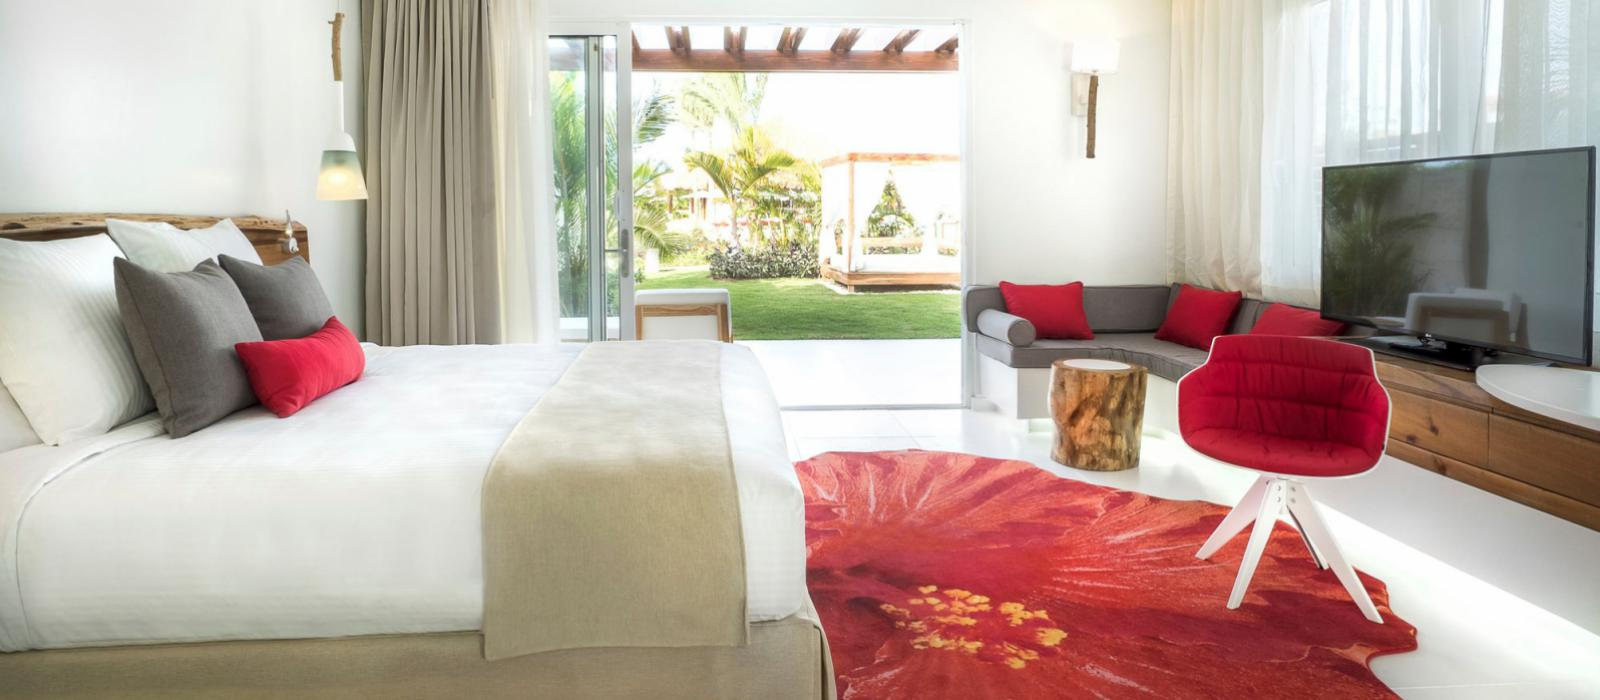 Shortlisted in the IH&P AWARDS 2015 for Best Hotel Room Americas & Caribbean | Club Med Punta Cana